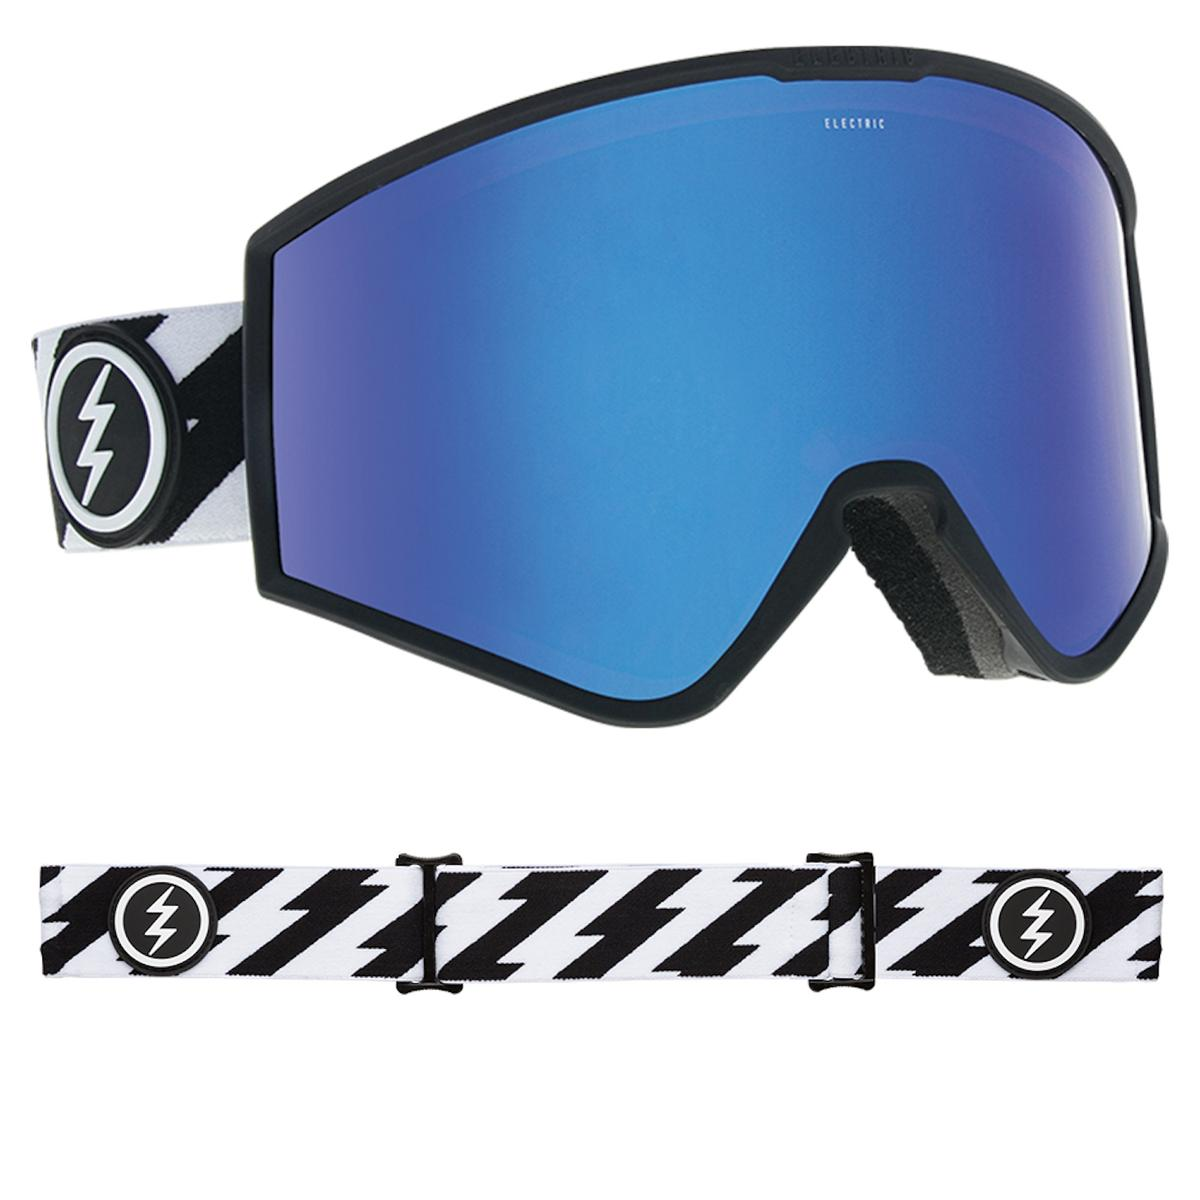 Electric Kleveland Goggles